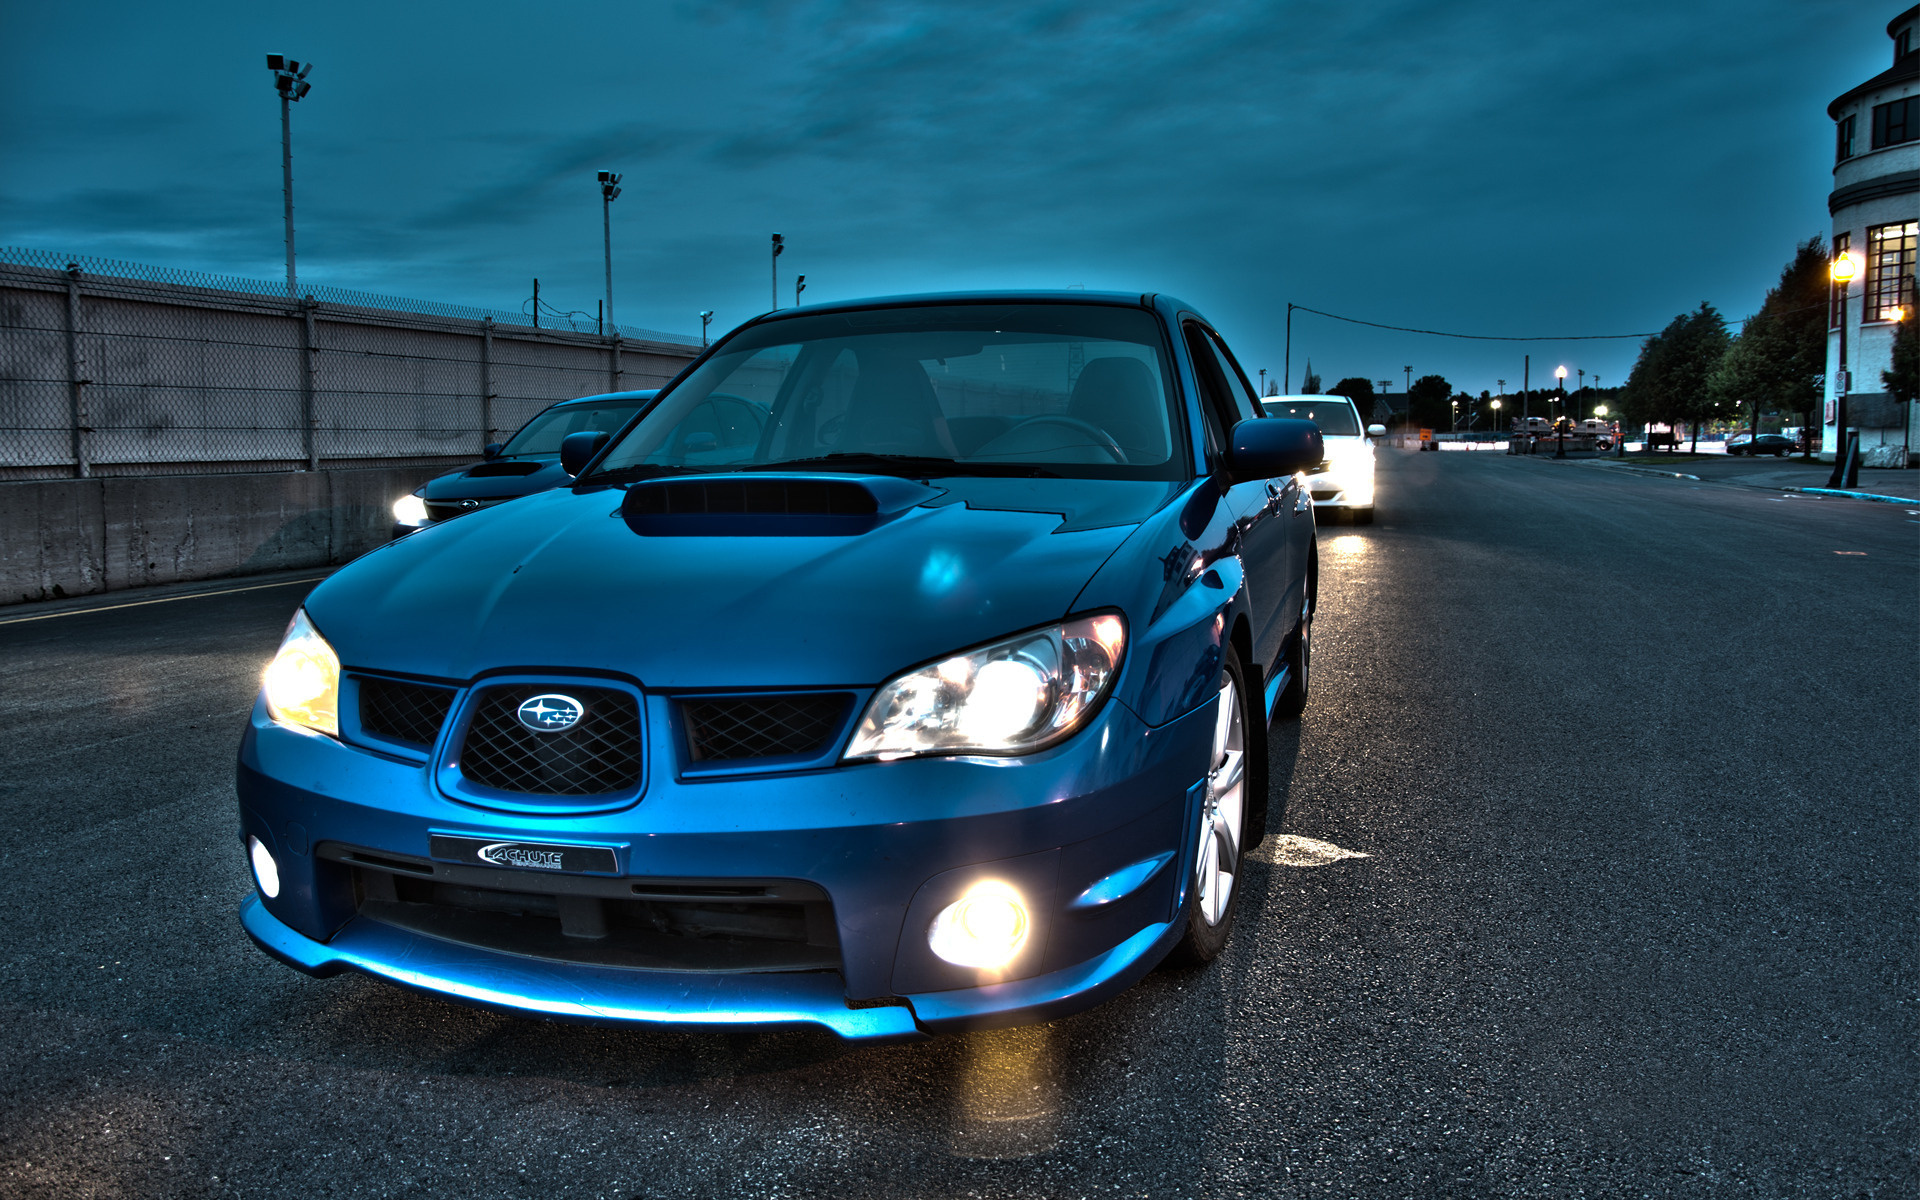 48521 download wallpaper Transport, Auto, Subaru screensavers and pictures for free